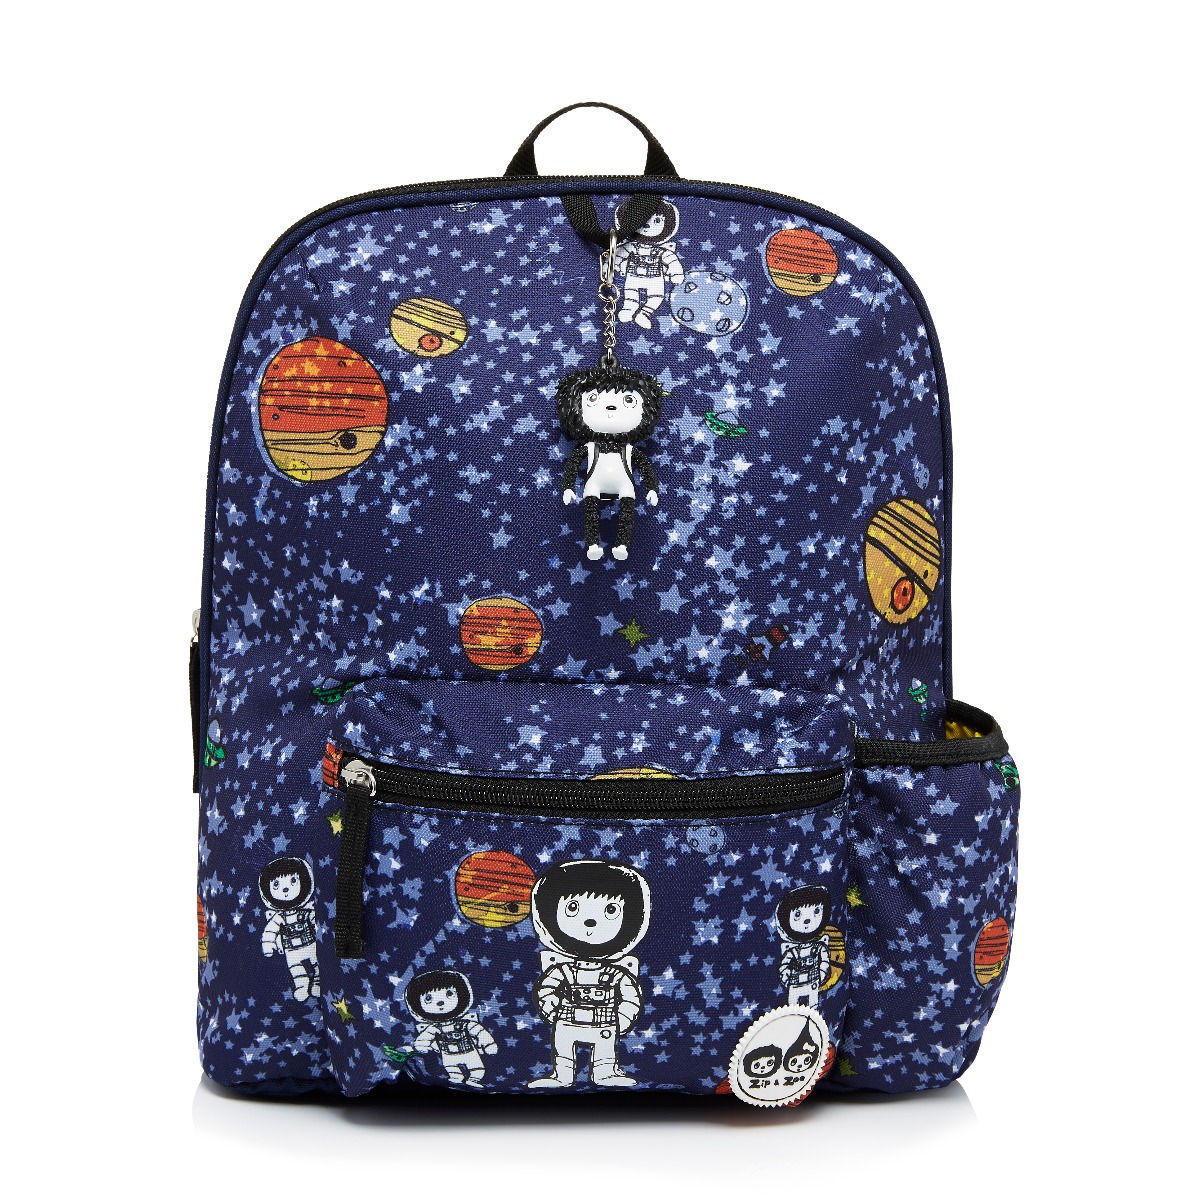 Zip and Zoe Midi Kid's Backpack (3-7Y) Spaceman